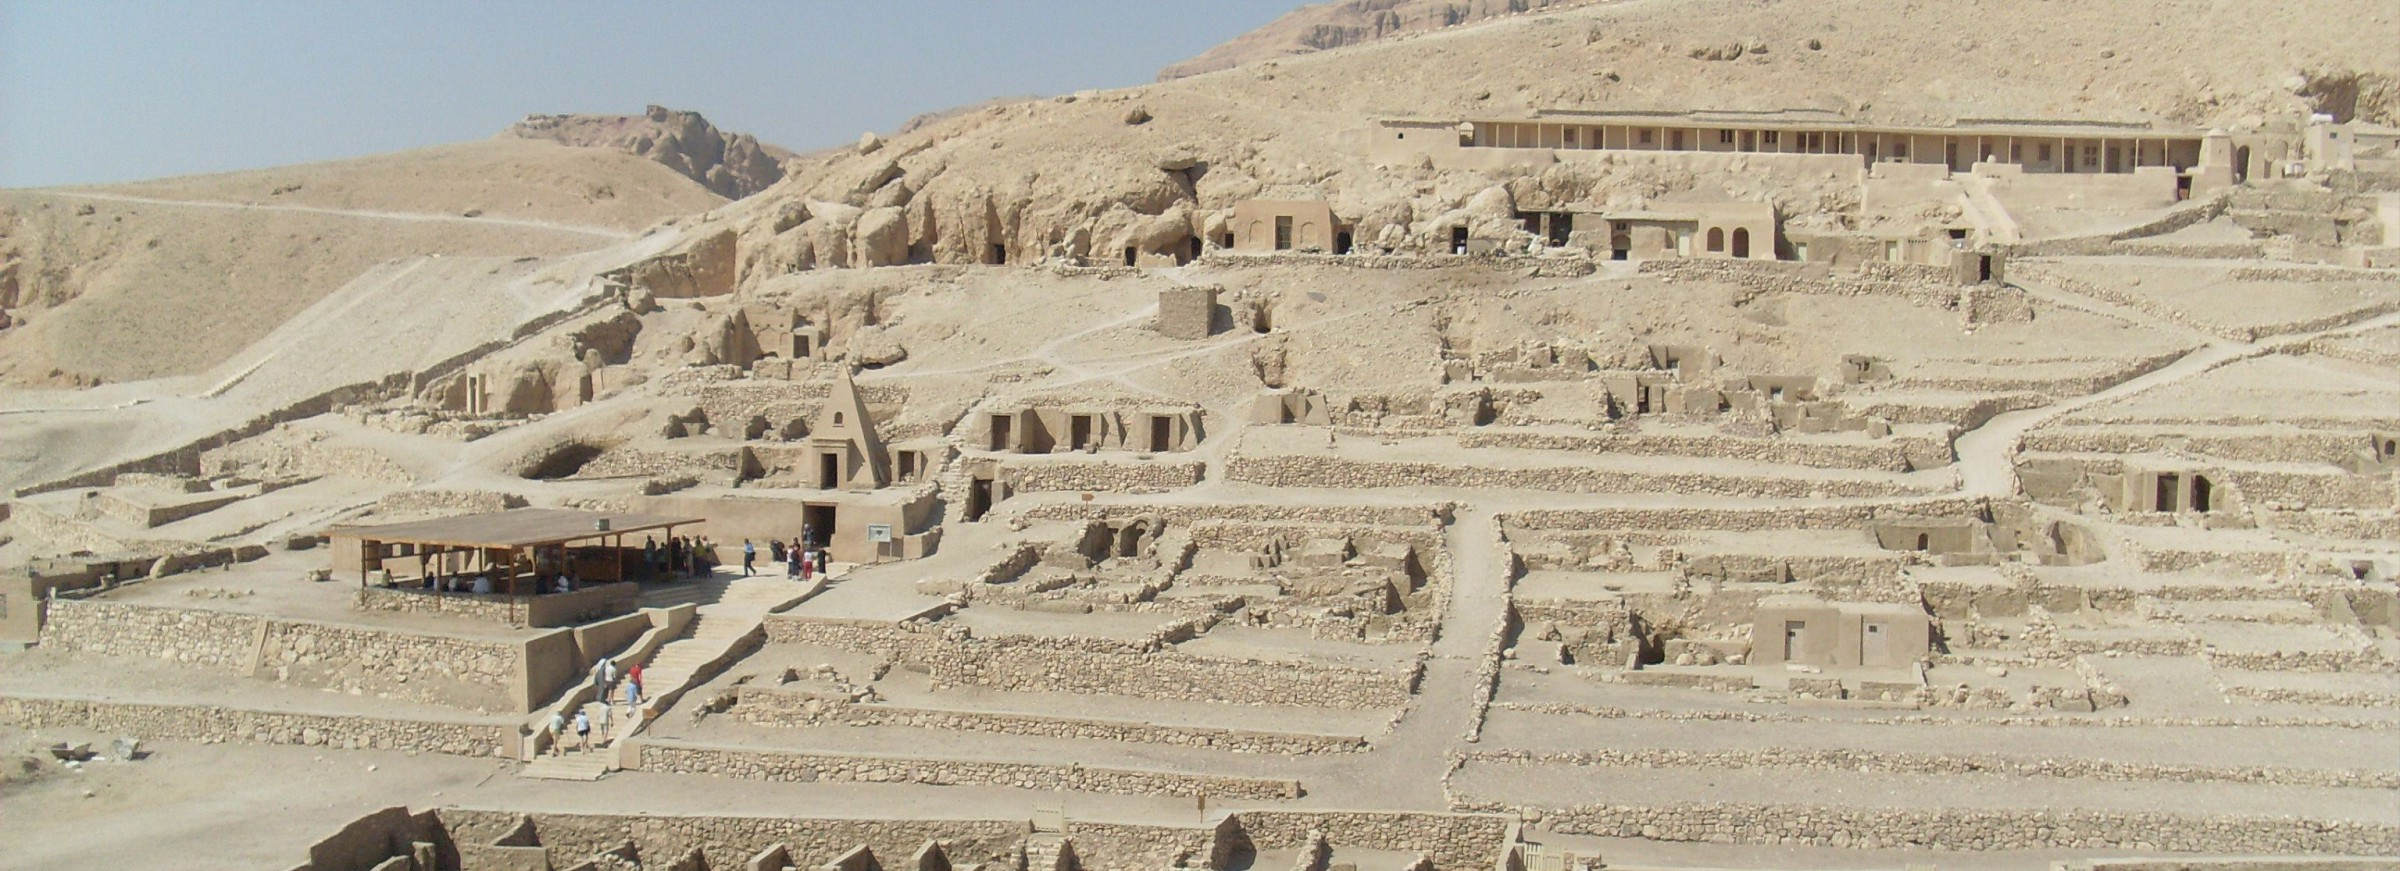 Valley Of The Queens - Wives Of Pharaohs - Ta-Set-Neferu - Egypt (The Place Of Beauty)